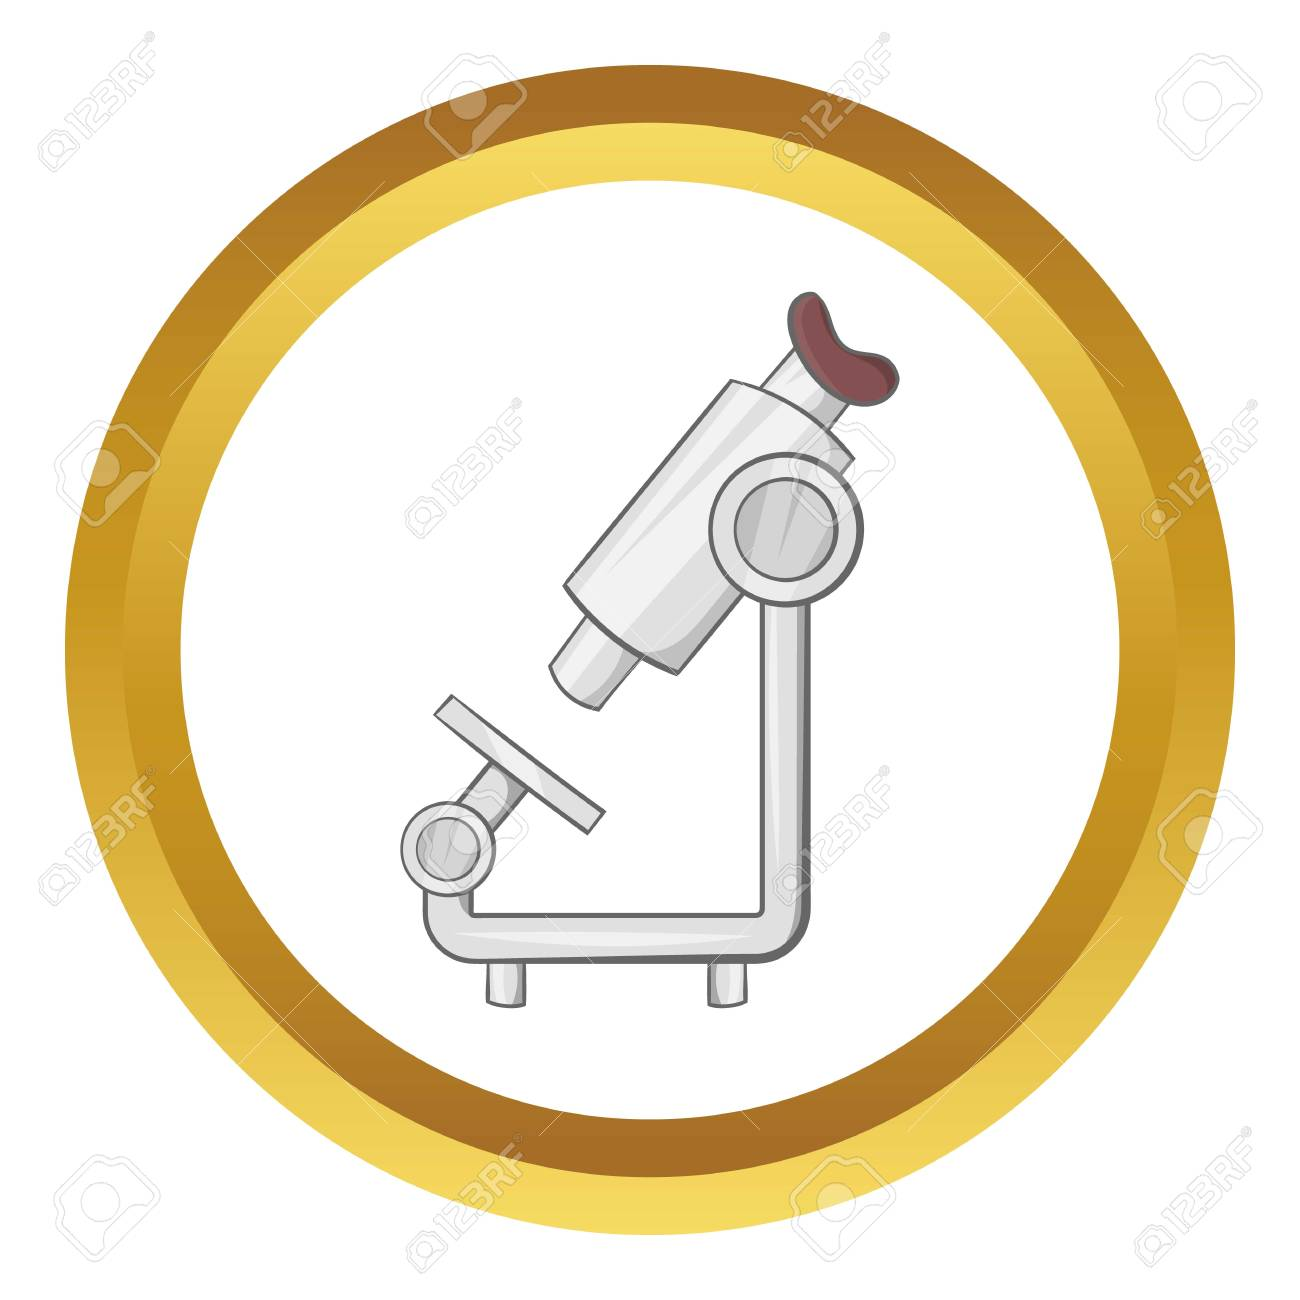 microscope vector icon in golden circle cartoon style isolated royalty free cliparts vectors and stock illustration image 69755832 123rf com